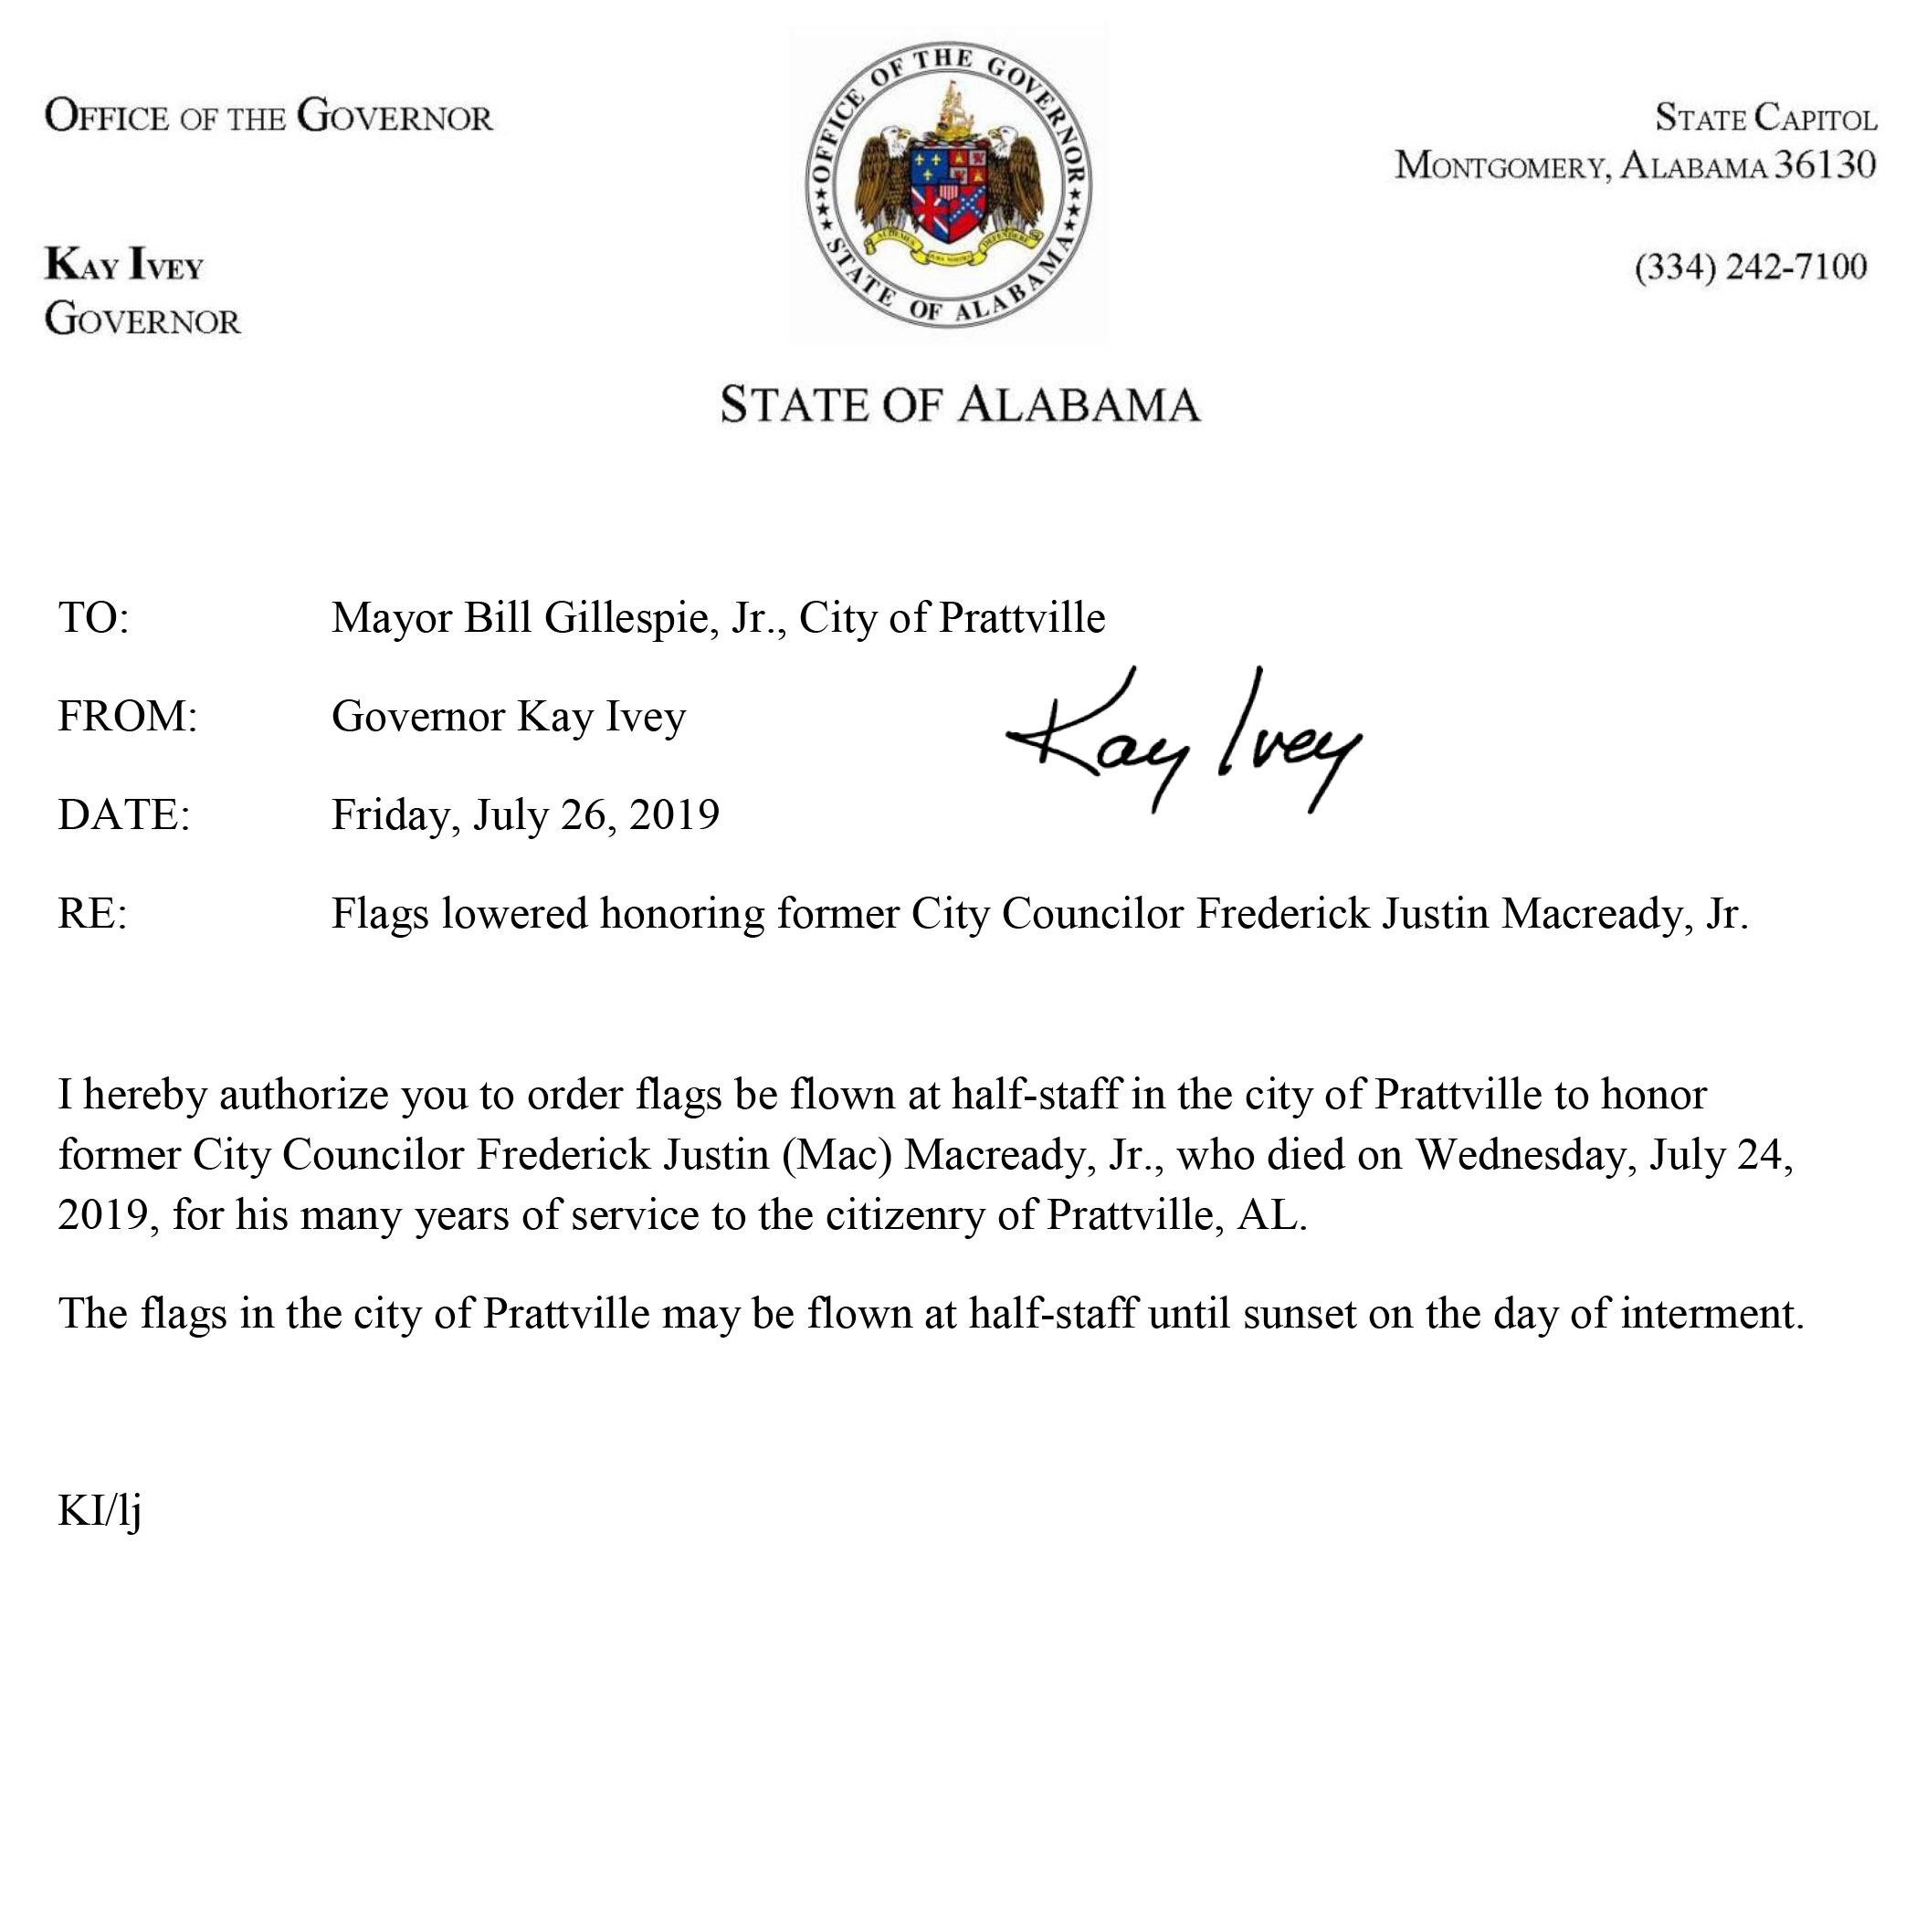 Flag Memo for former City Councilor Frederick Justin Mac Macready Jr.